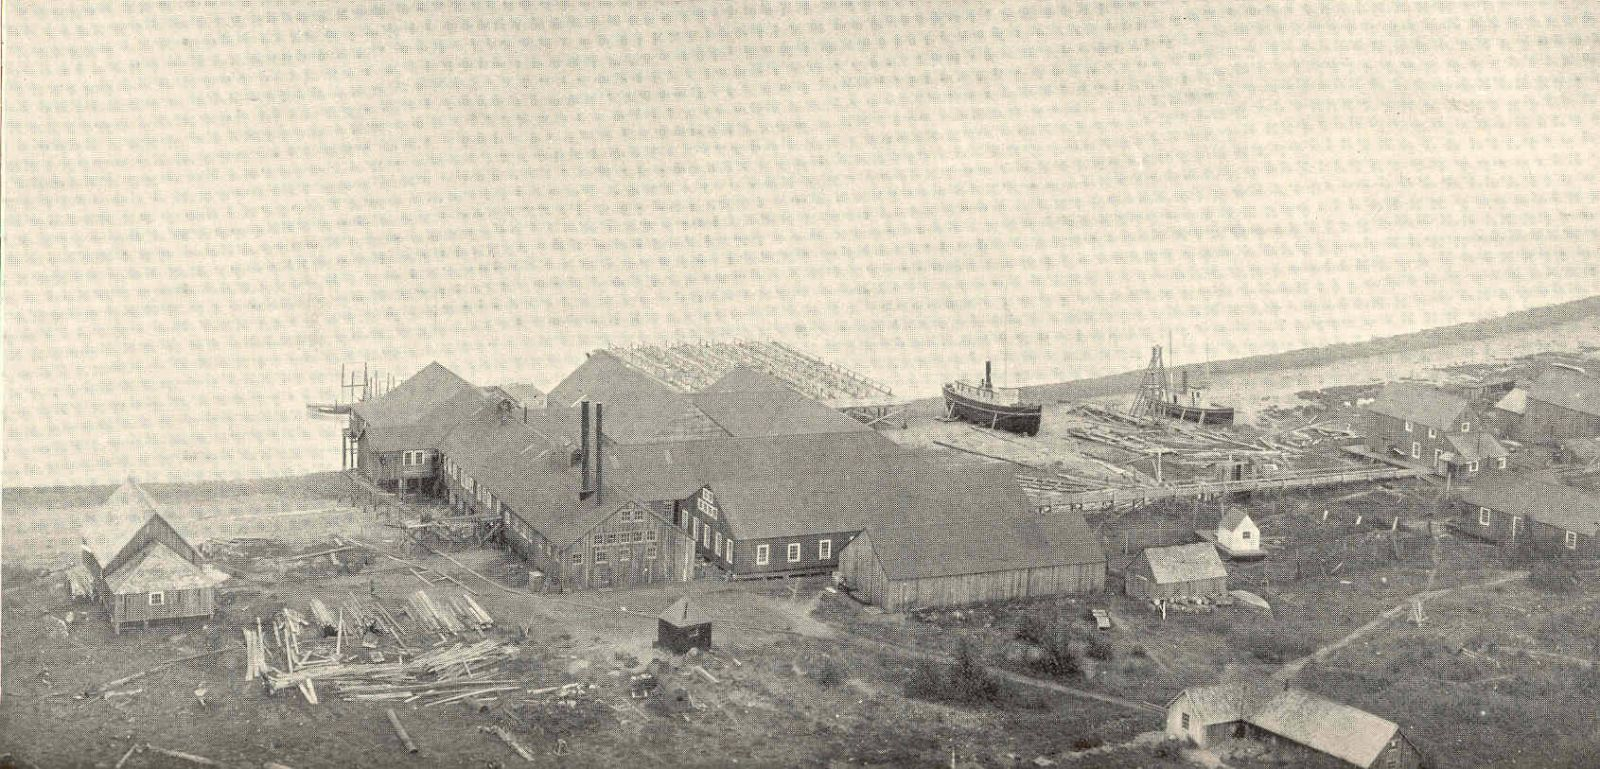 Alaska Packers Association Cannery At Pyramid Harbor - 1899